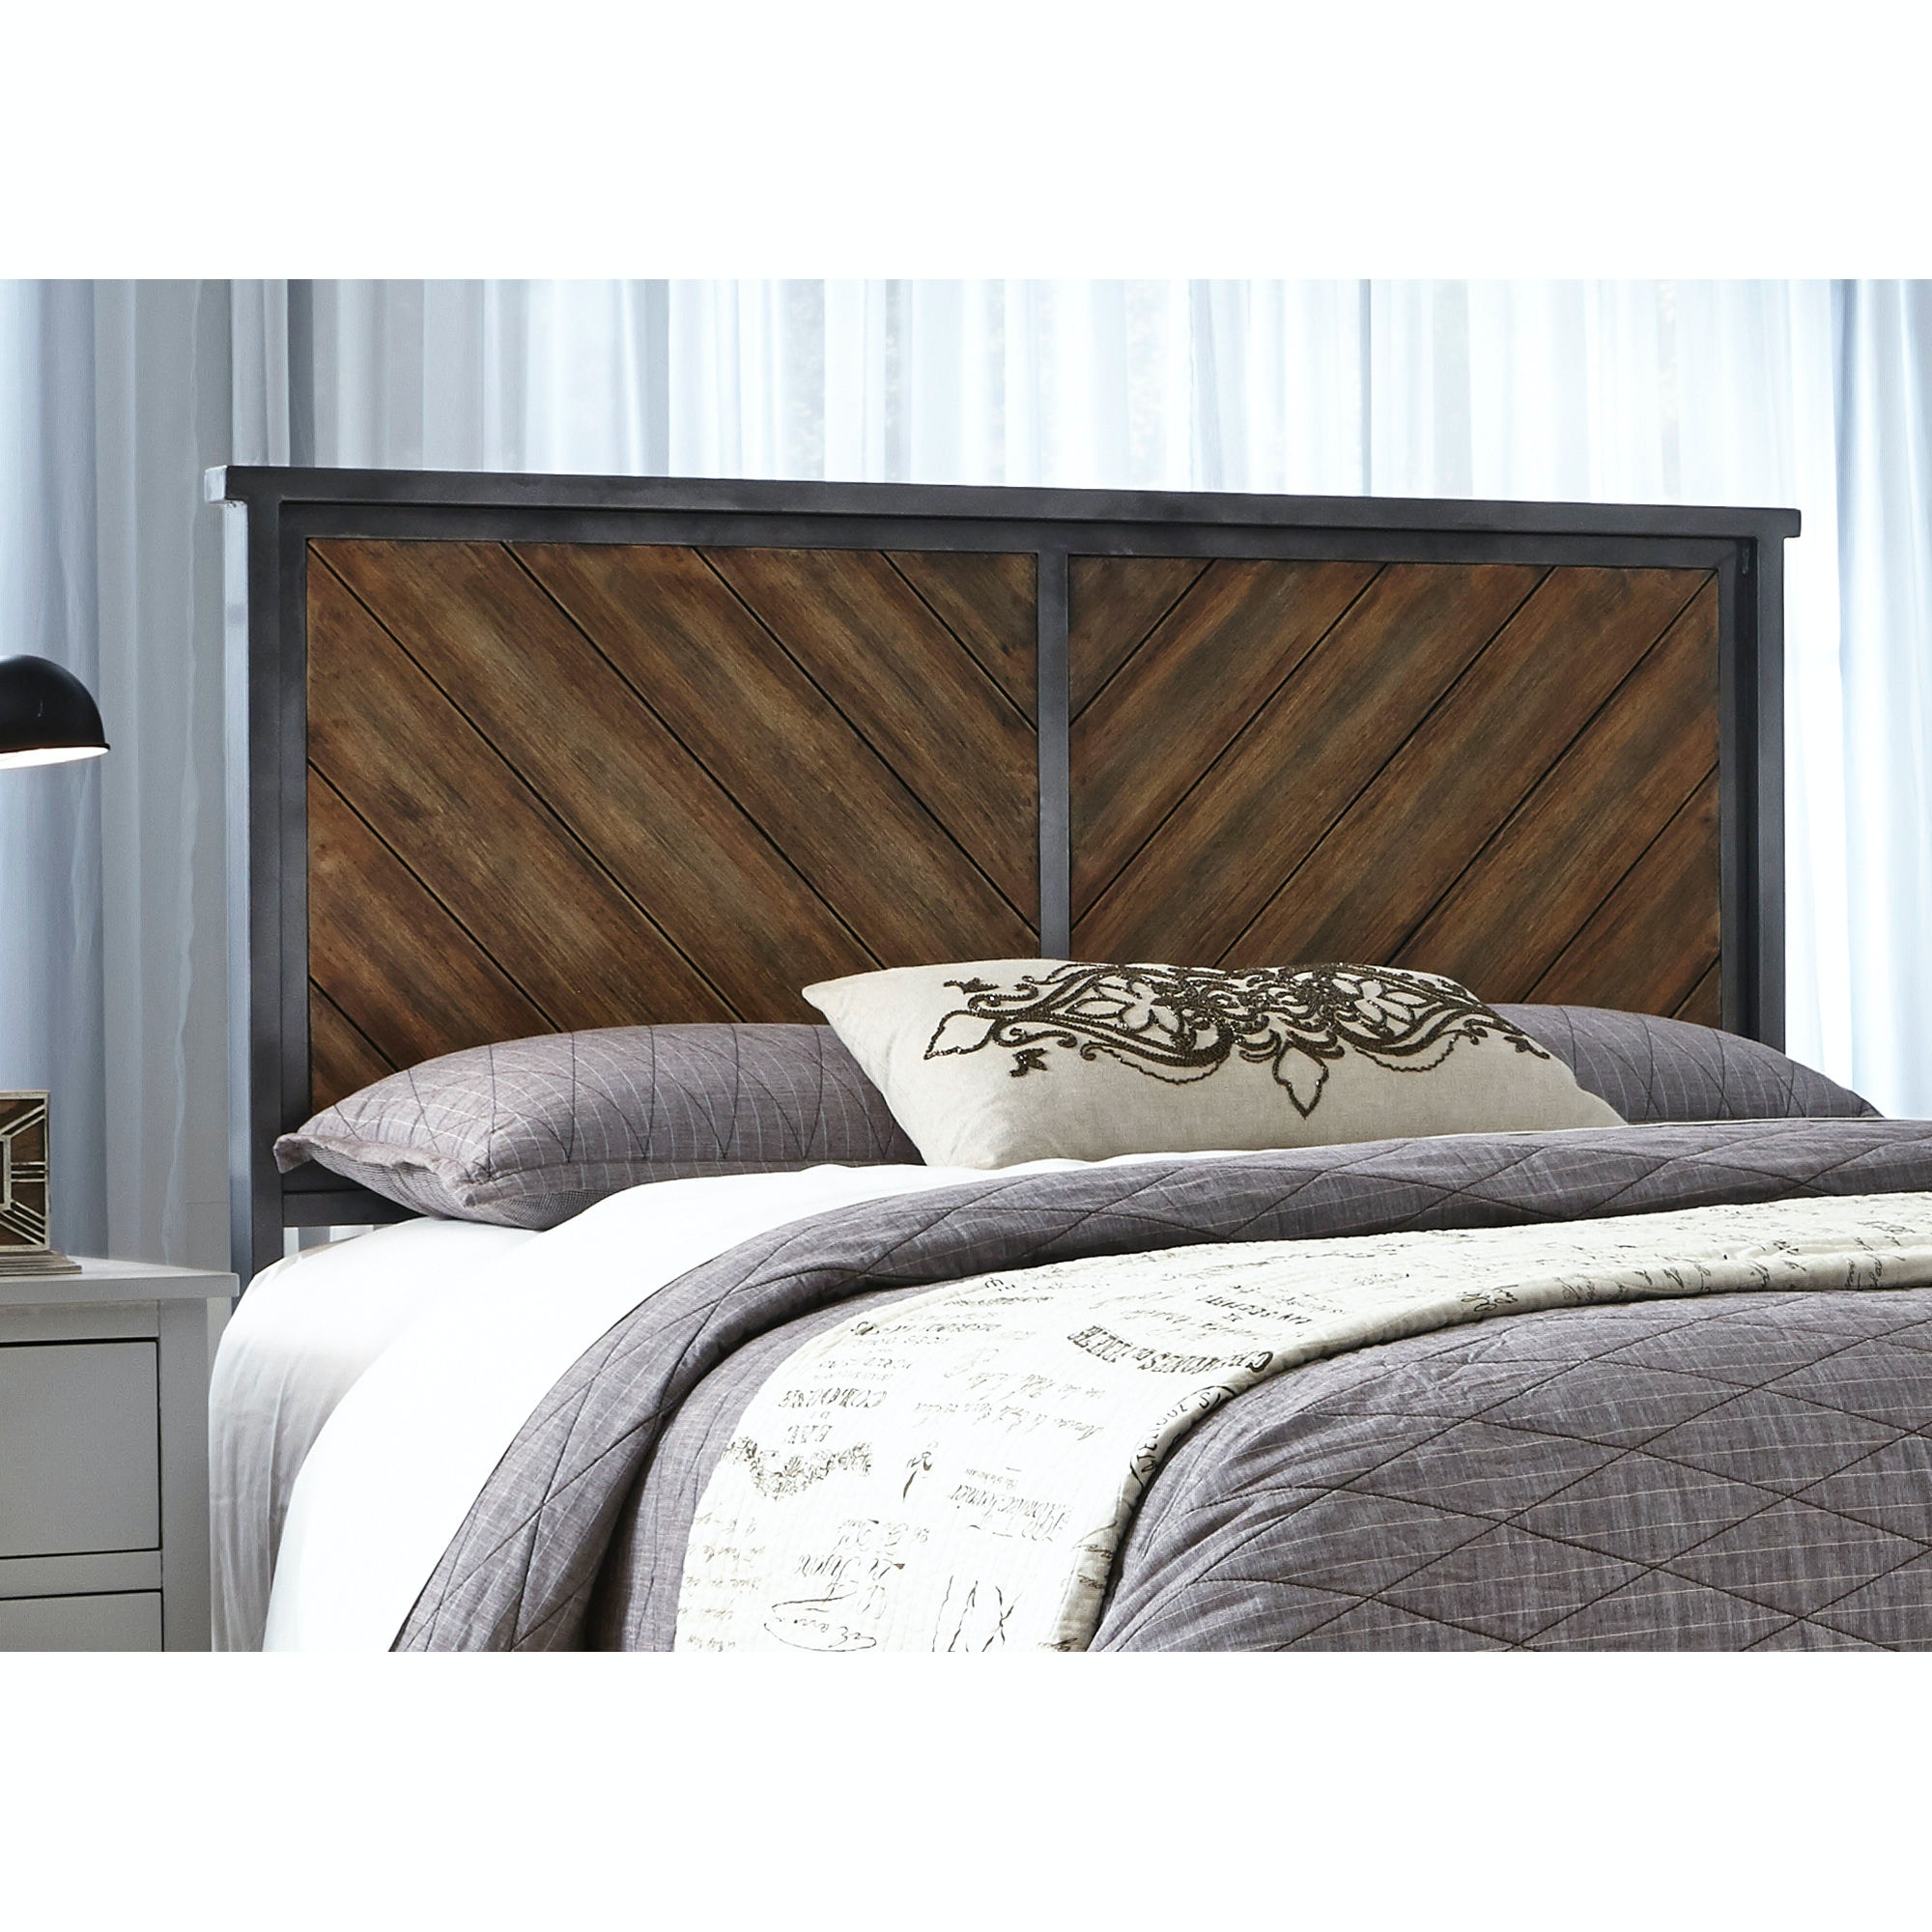 Fashion Bed Group Braden Metal Headboard Panel With Reclaimed Wood Design,  Rustic Tobacco Finish,